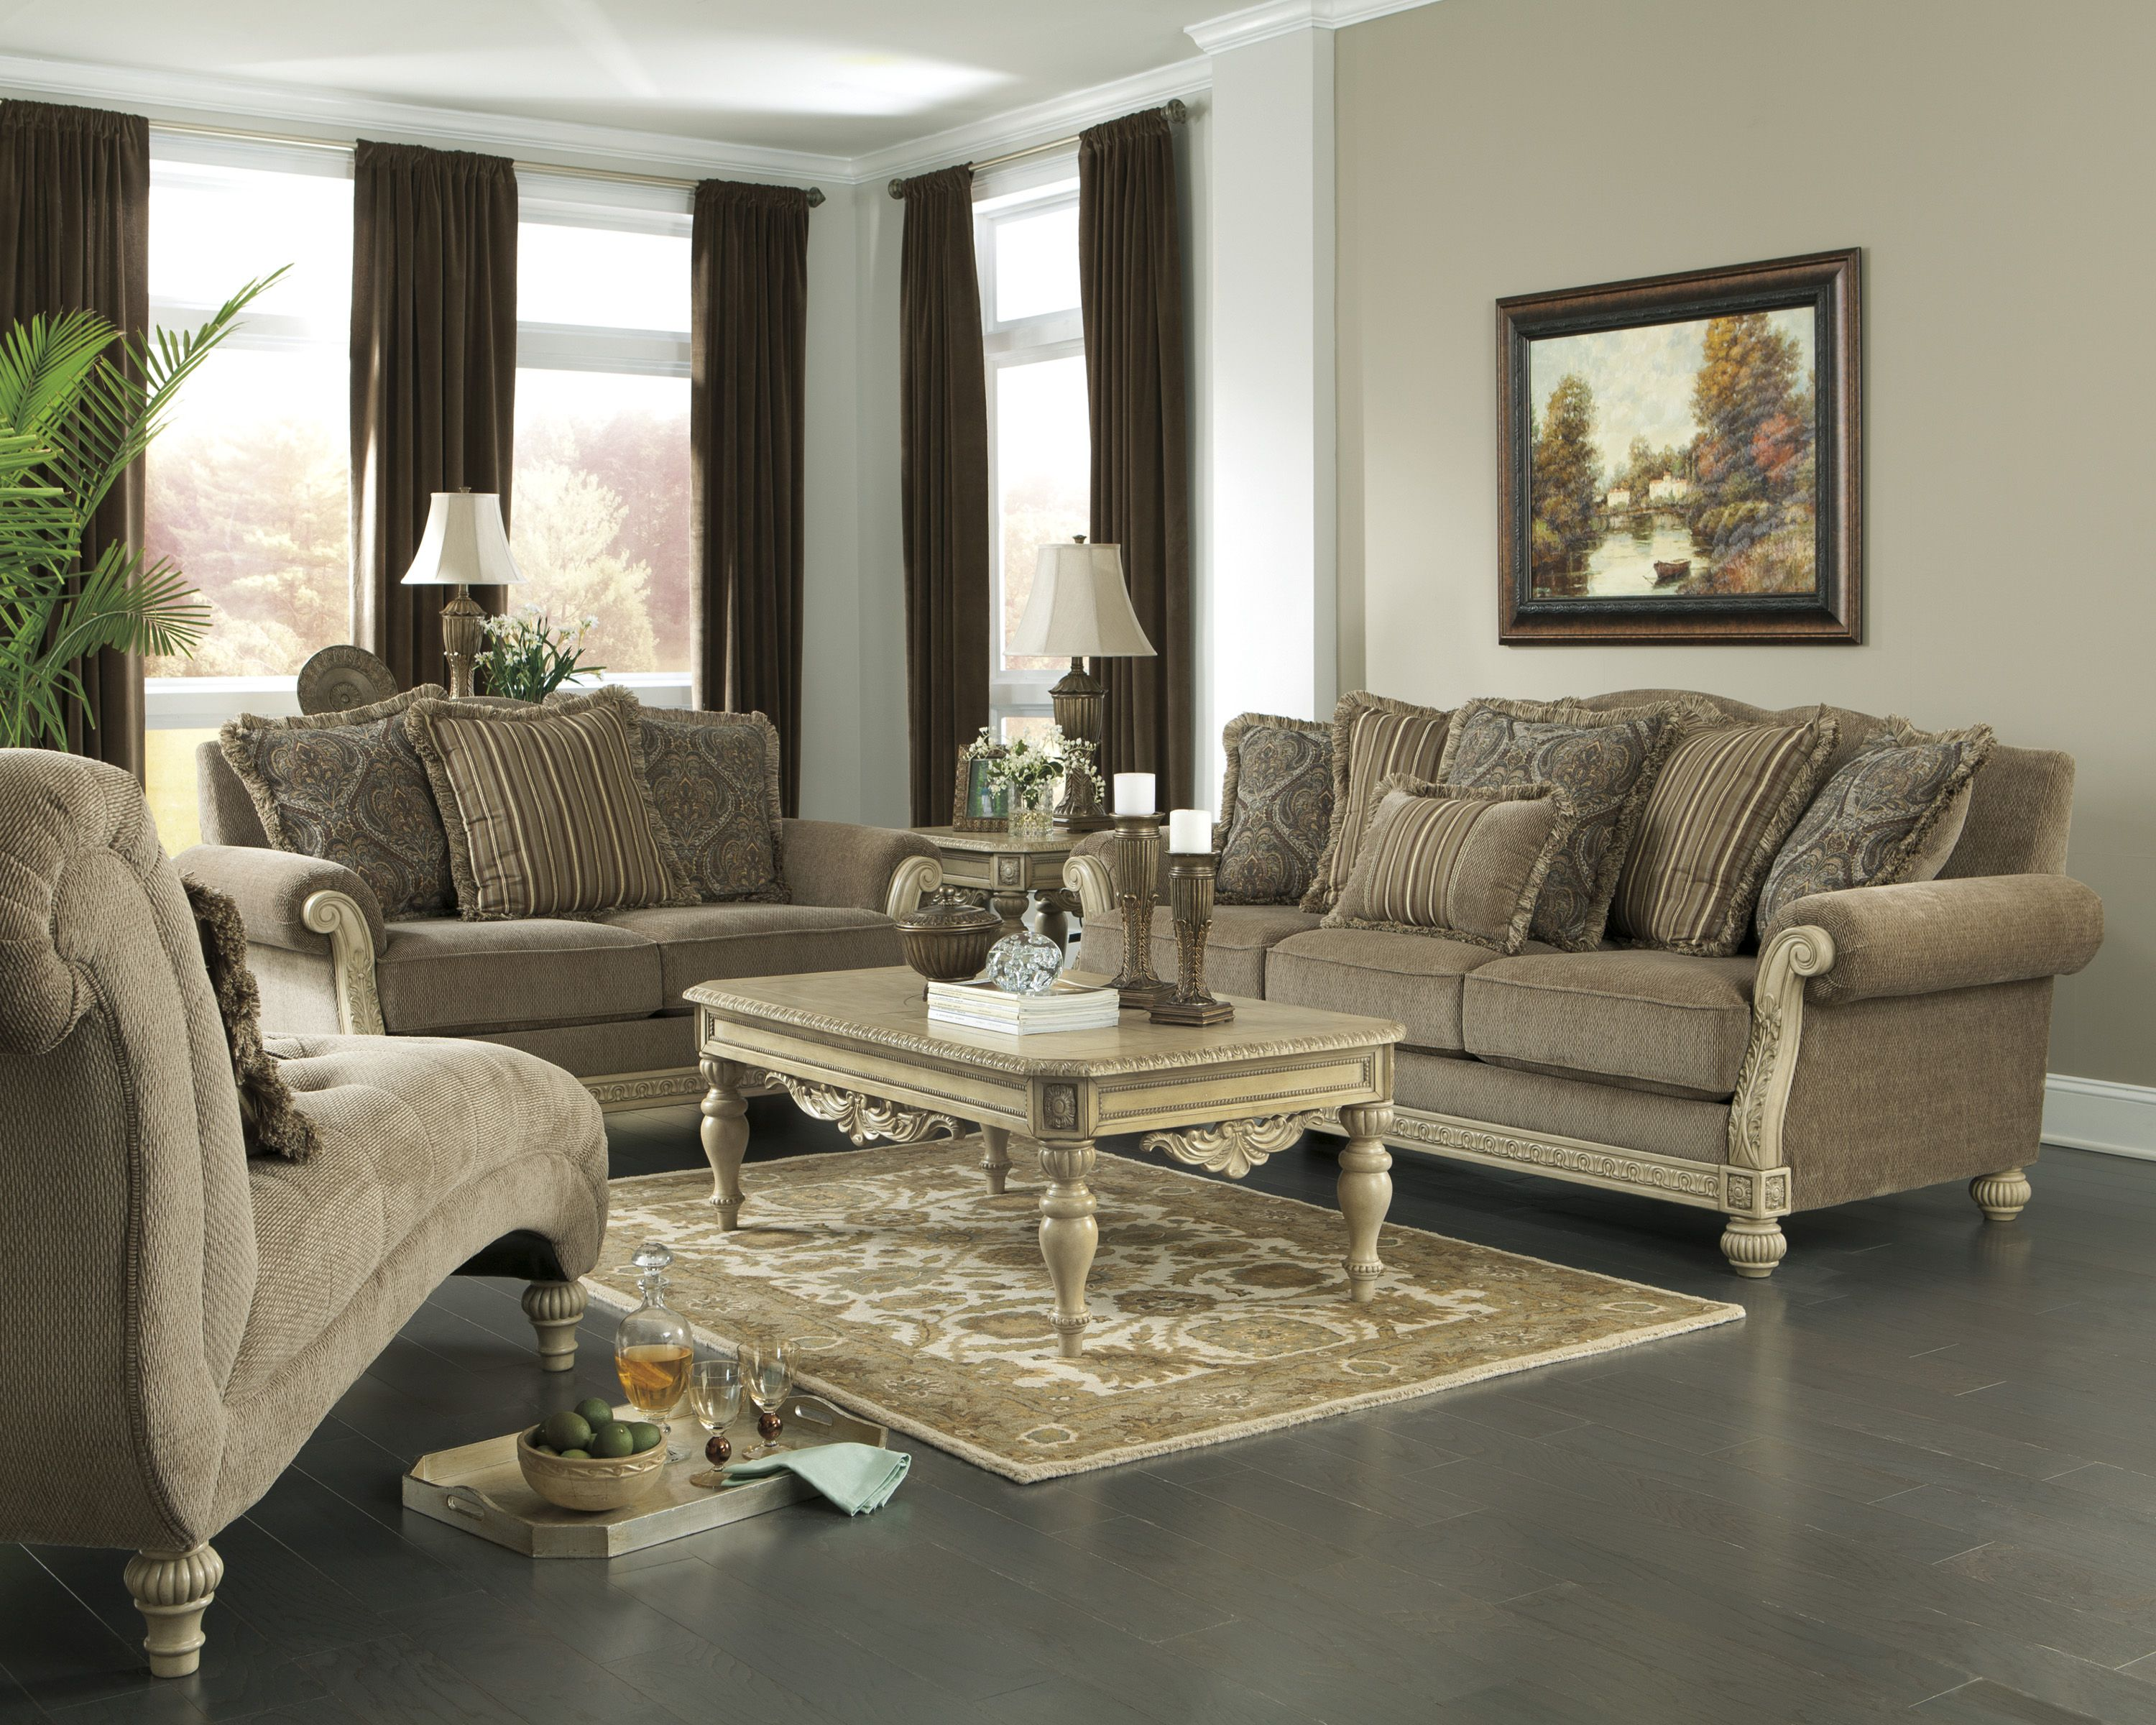 Parking Bay Platinum Collection Ashley Furniture Sofa - Ashley furniture living room set